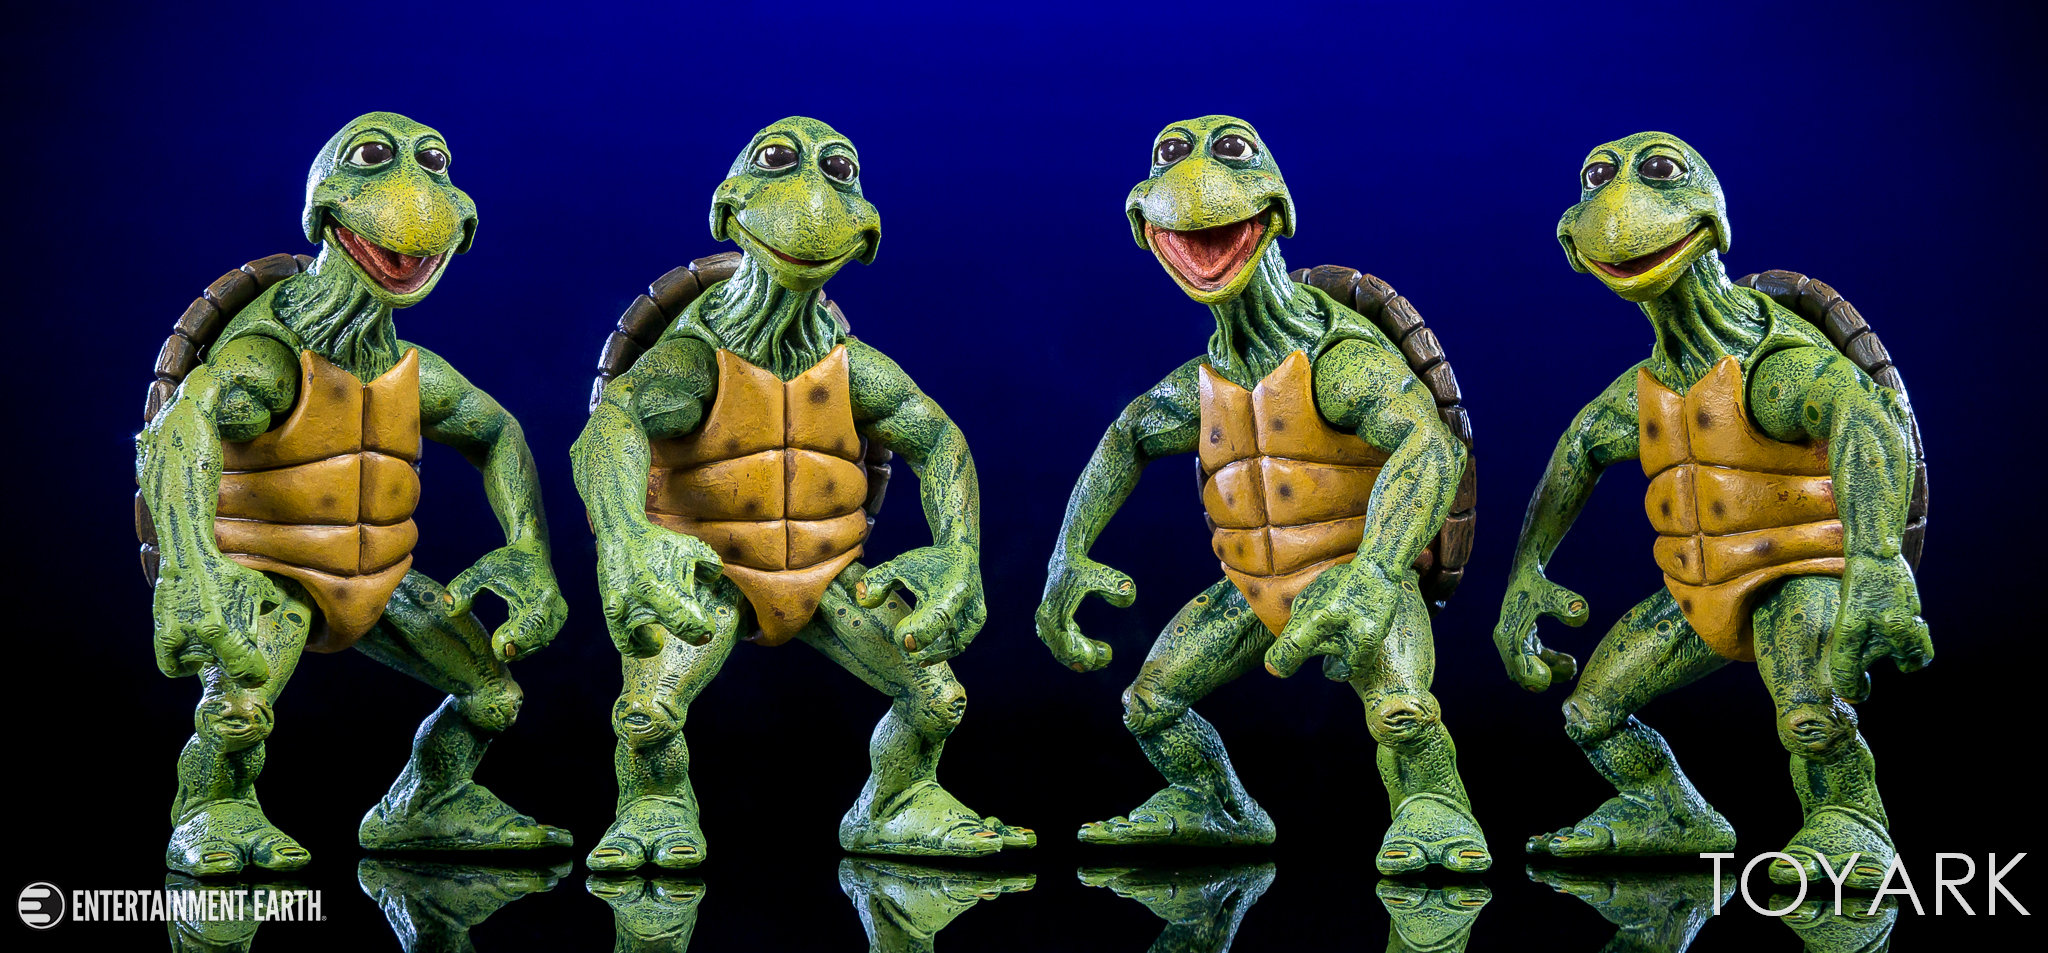 https://news.toyark.com/wp-content/uploads/sites/4/2018/06/NECA-Baby-Turtles-1990-TMNT-006.jpg